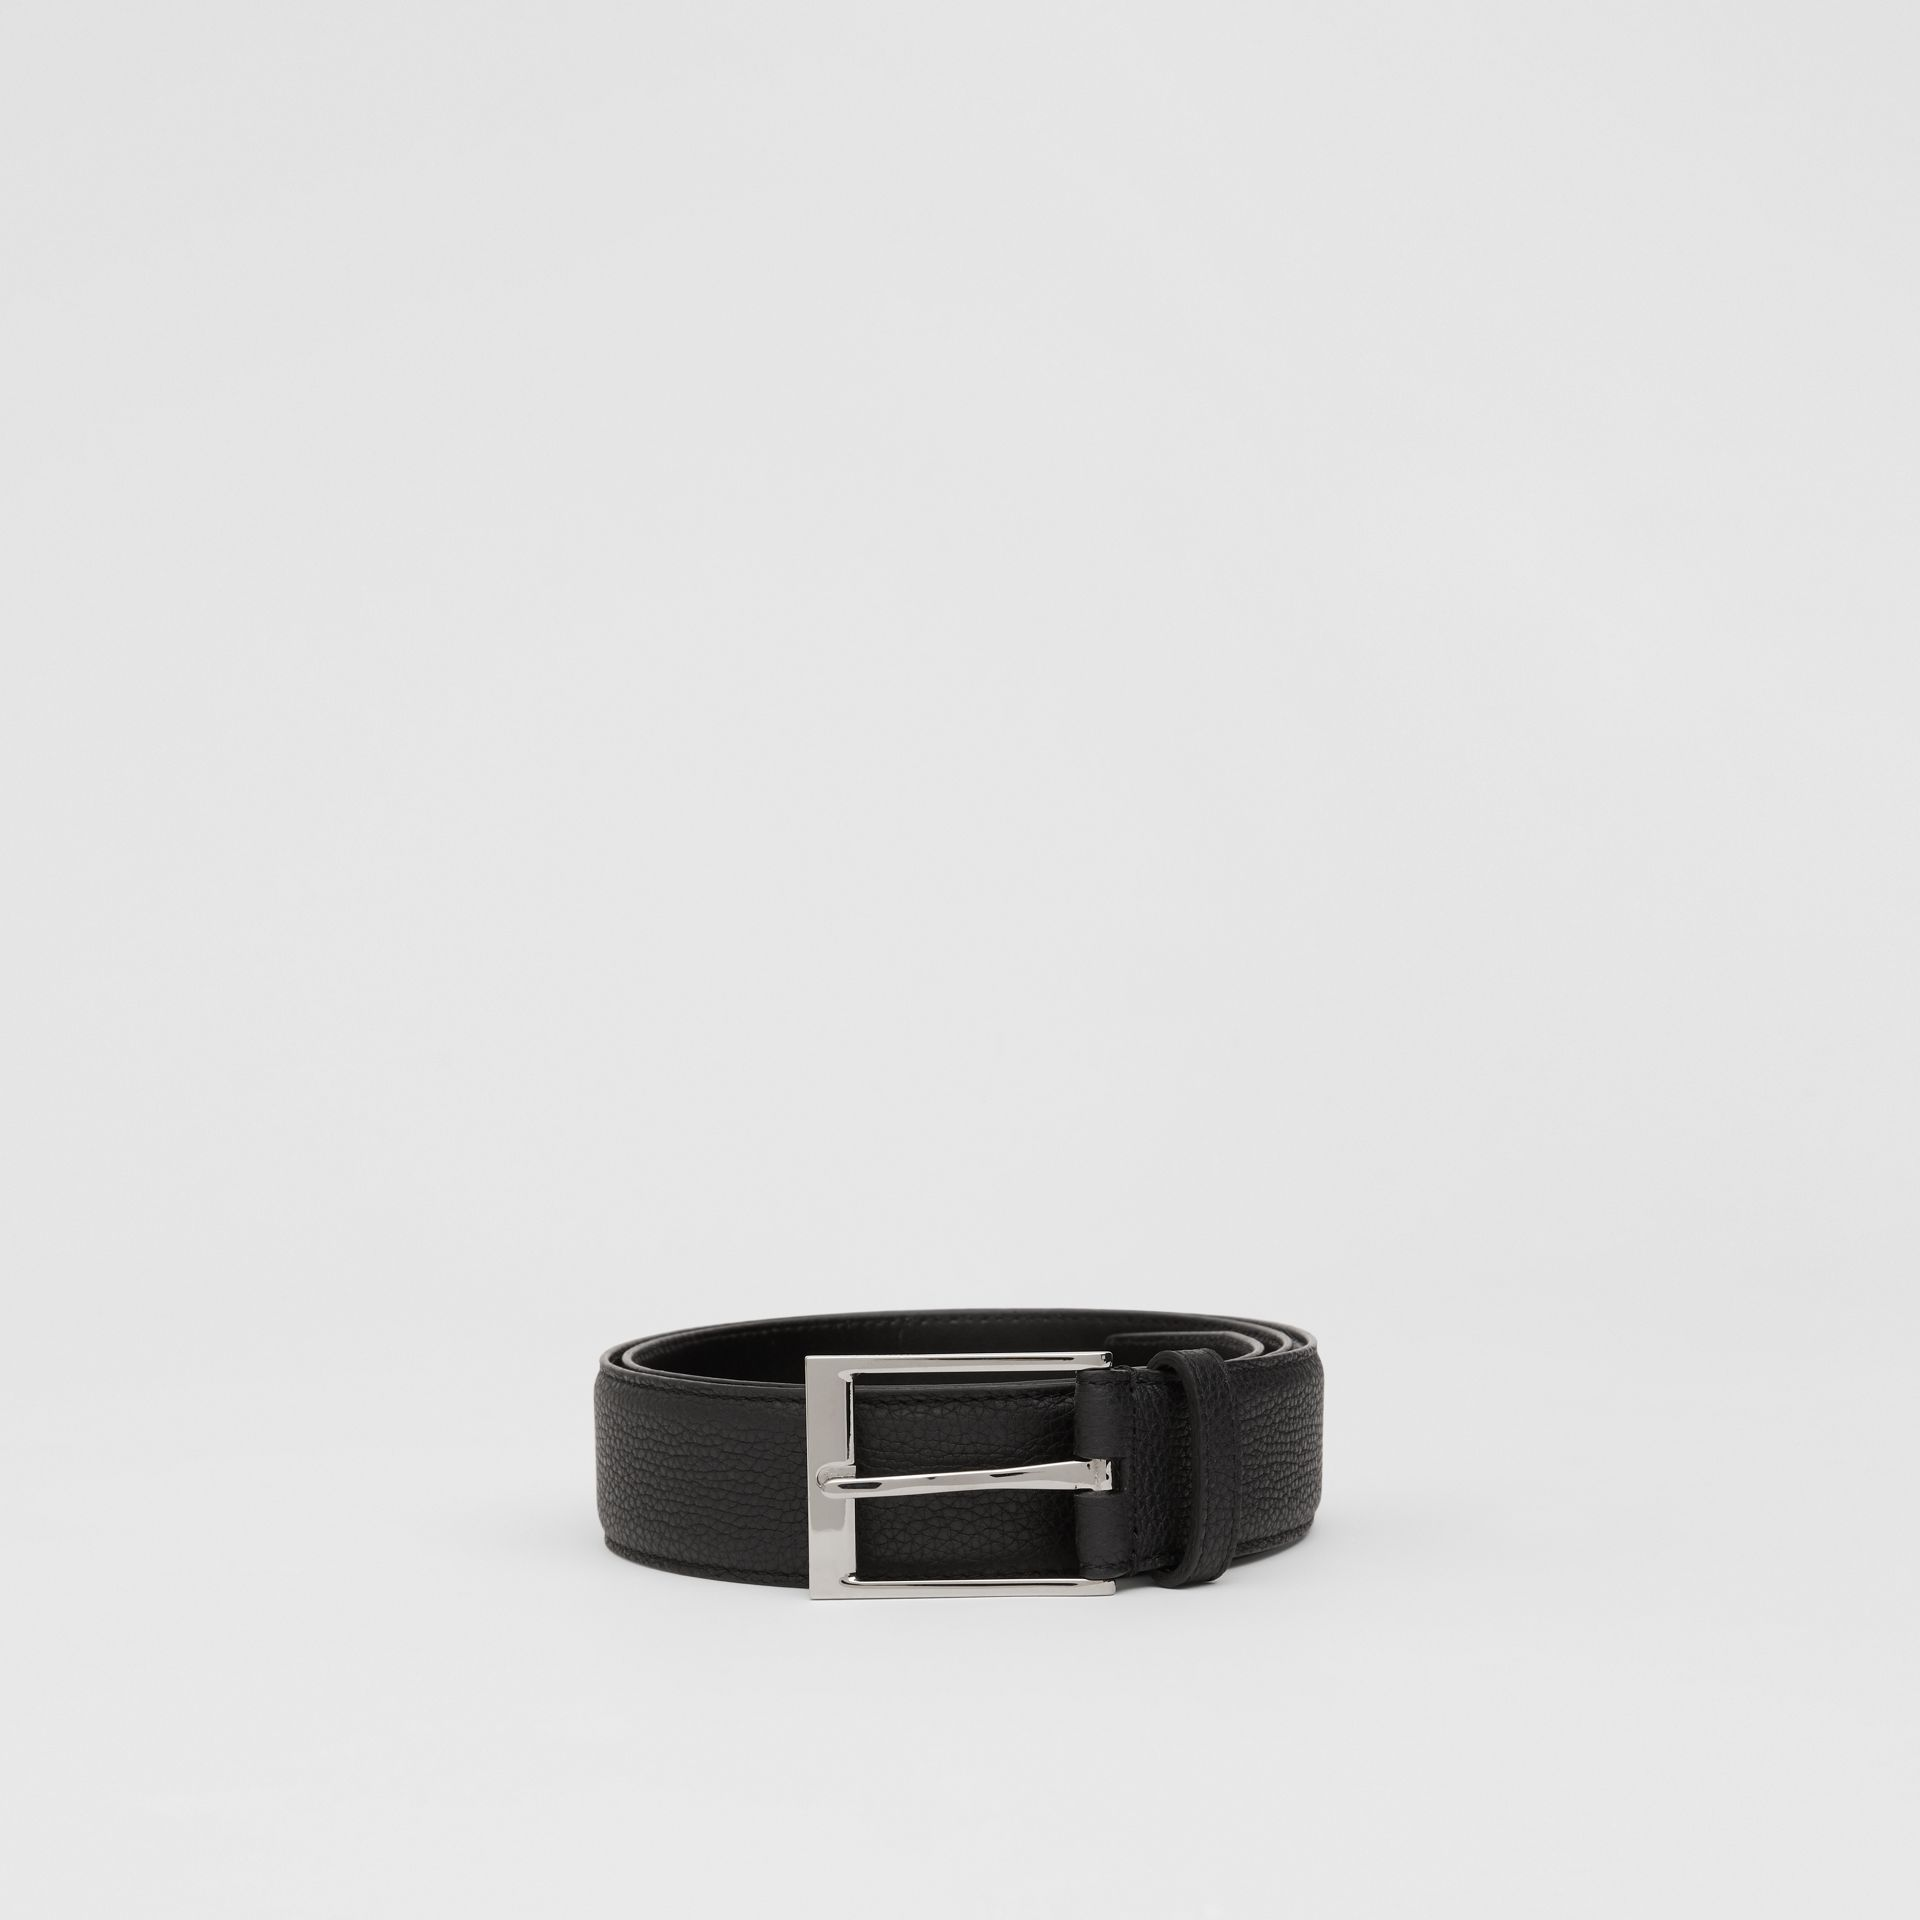 Ceinture en cuir grainé (Noir) | Burberry - photo de la galerie 2